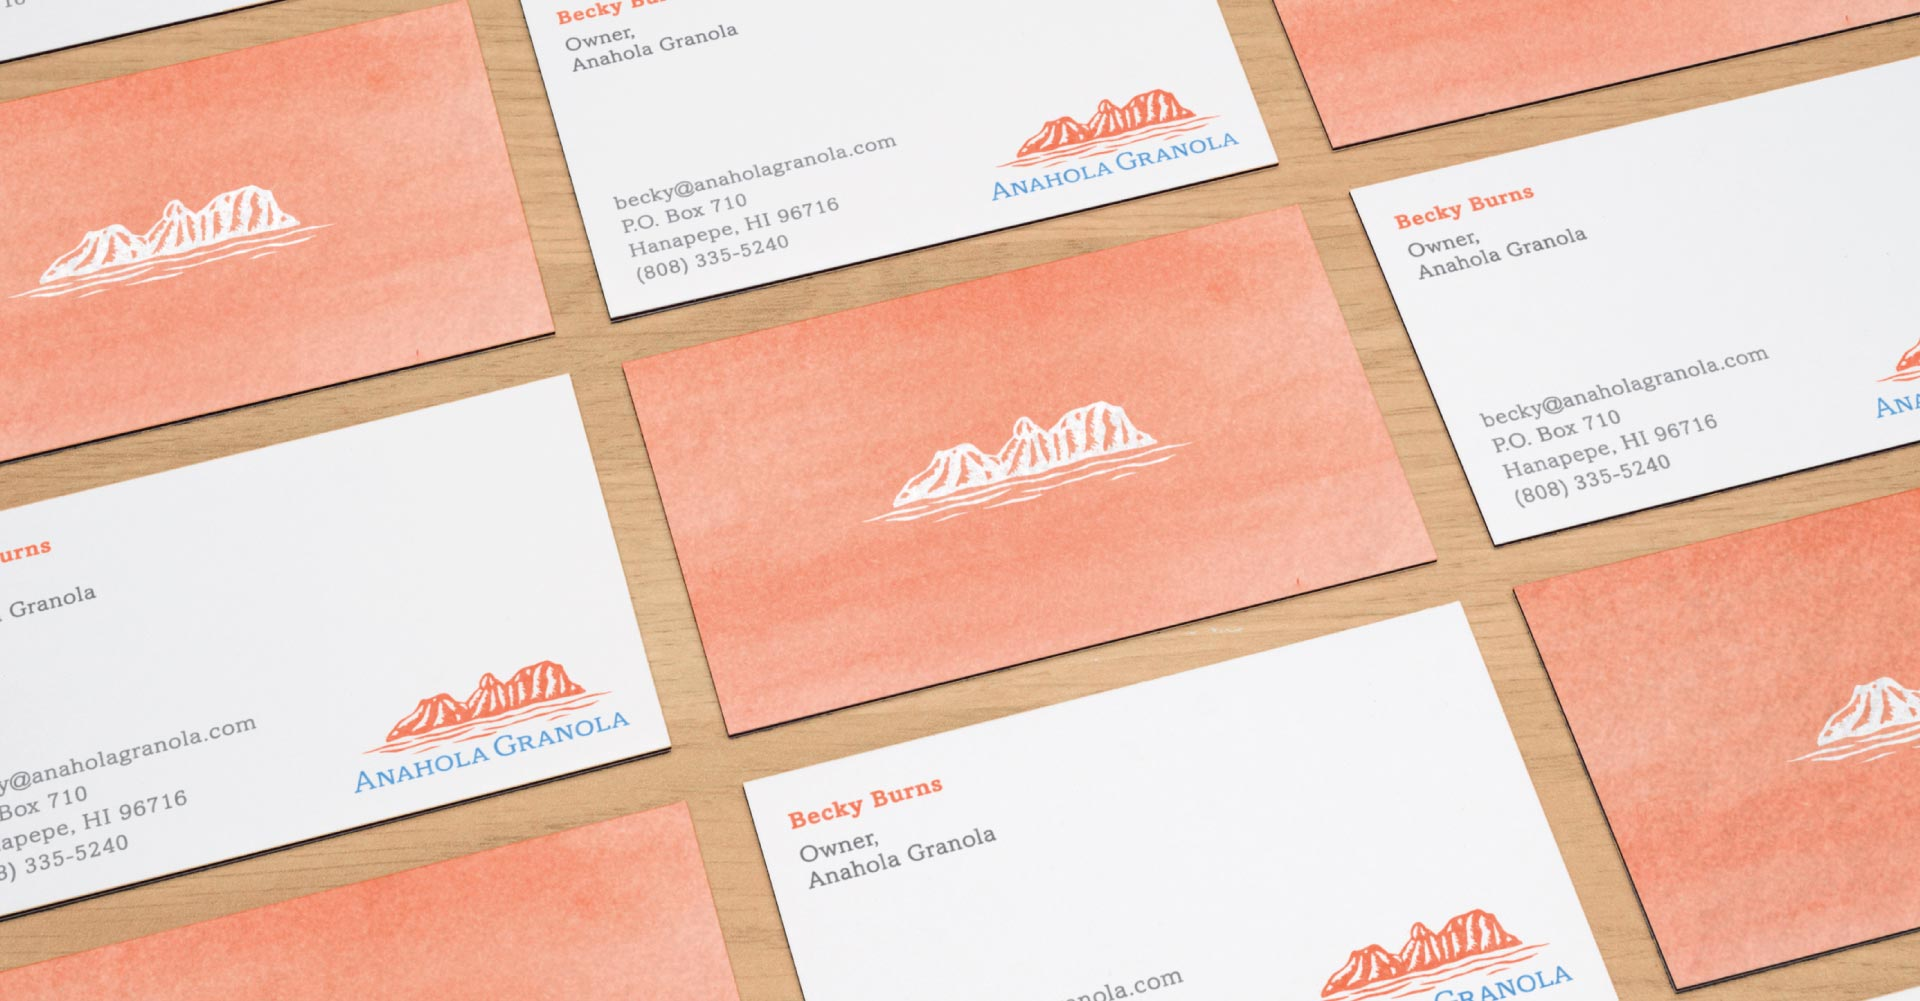 Creative_Retail_Packaging_Branding_Identity_Package_Design_AnaholaGranola_04.jpg